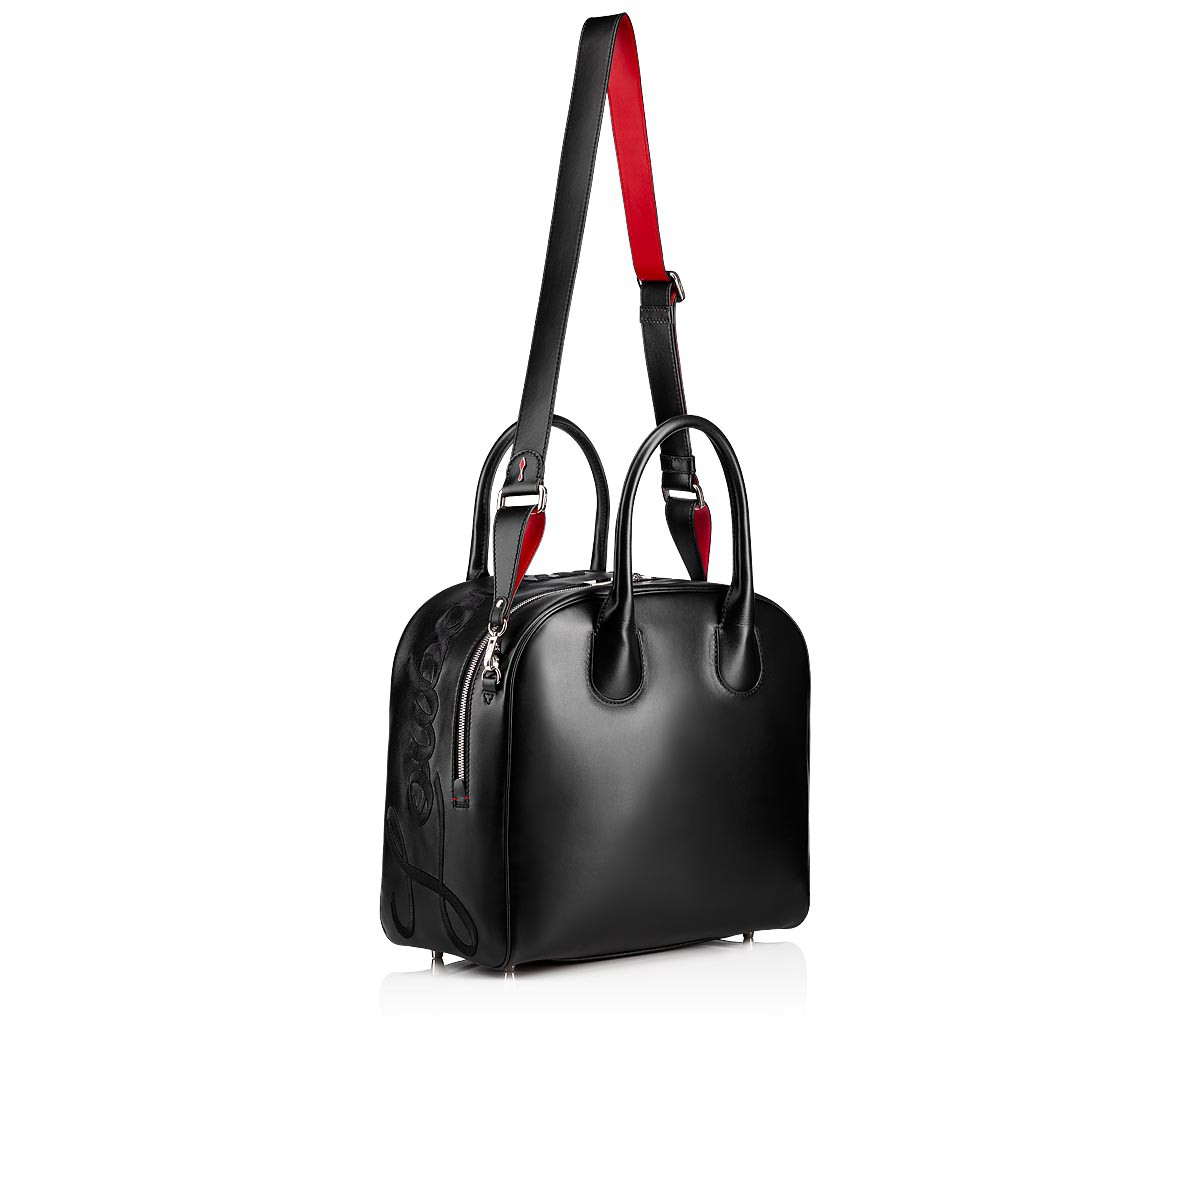 Bags - Marie Jane Bag - Christian Louboutin